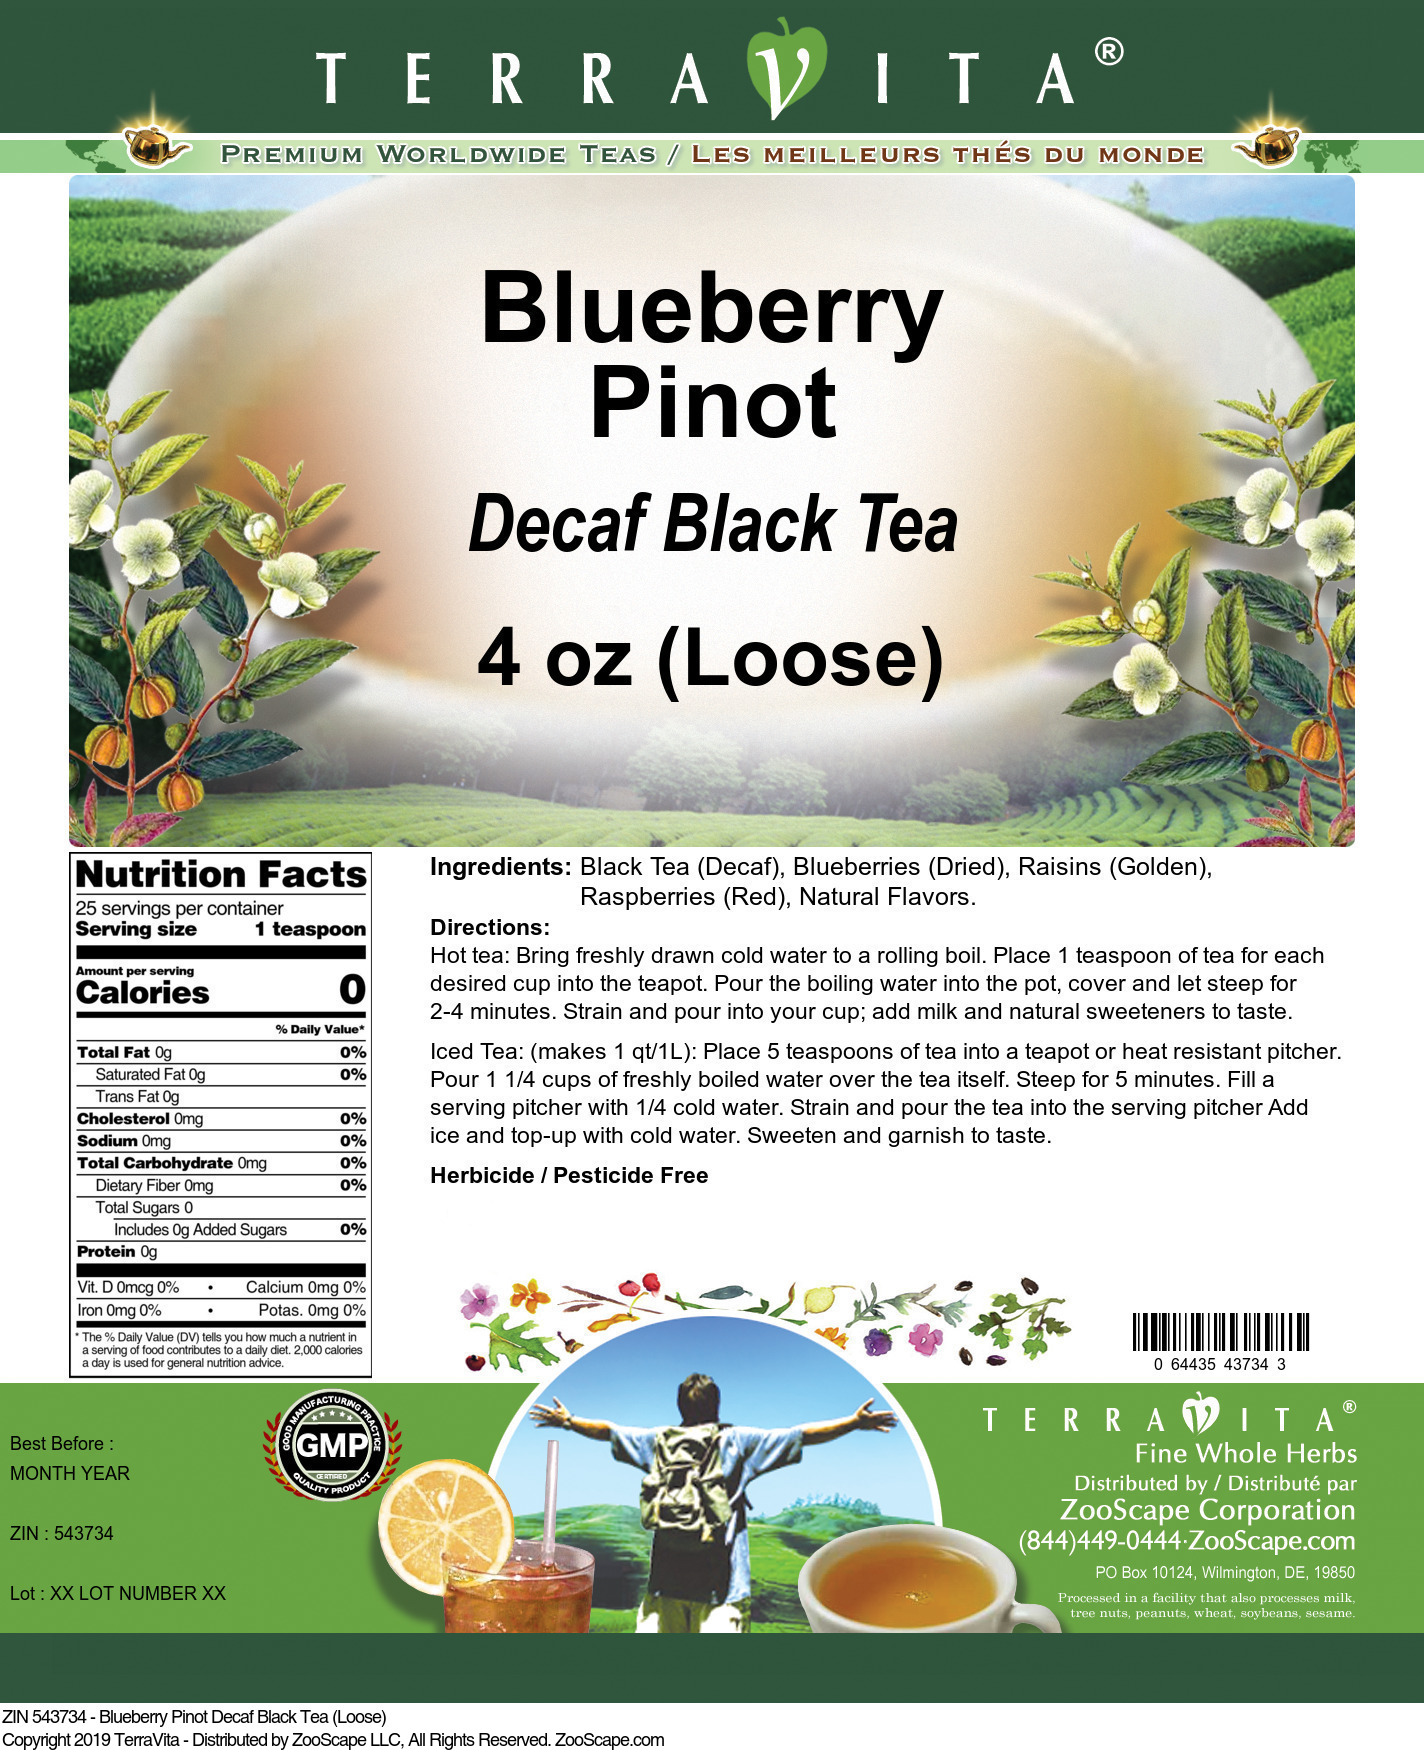 Blueberry Pinot Decaf Black Tea (Loose)